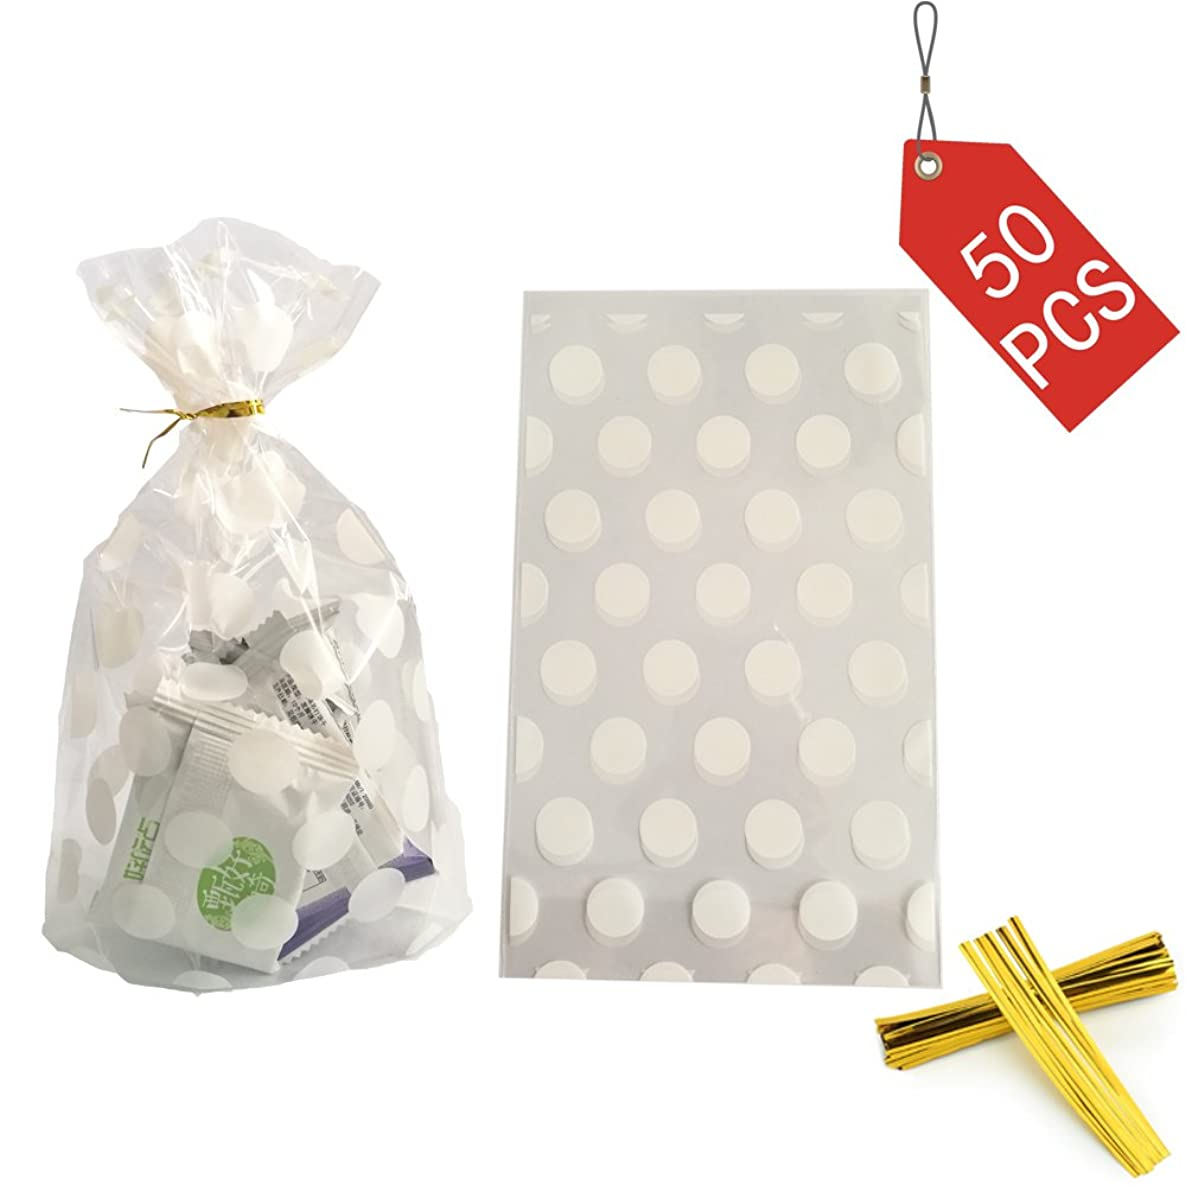 Clear Cello Bags Candy Cookie Treat Plastic Bag White Dot Cellophane party favor bags with Twist Ties for Wedding,Bridal Shower,Birthday,Baby Shower,celebration party supplies decorations,50pcs